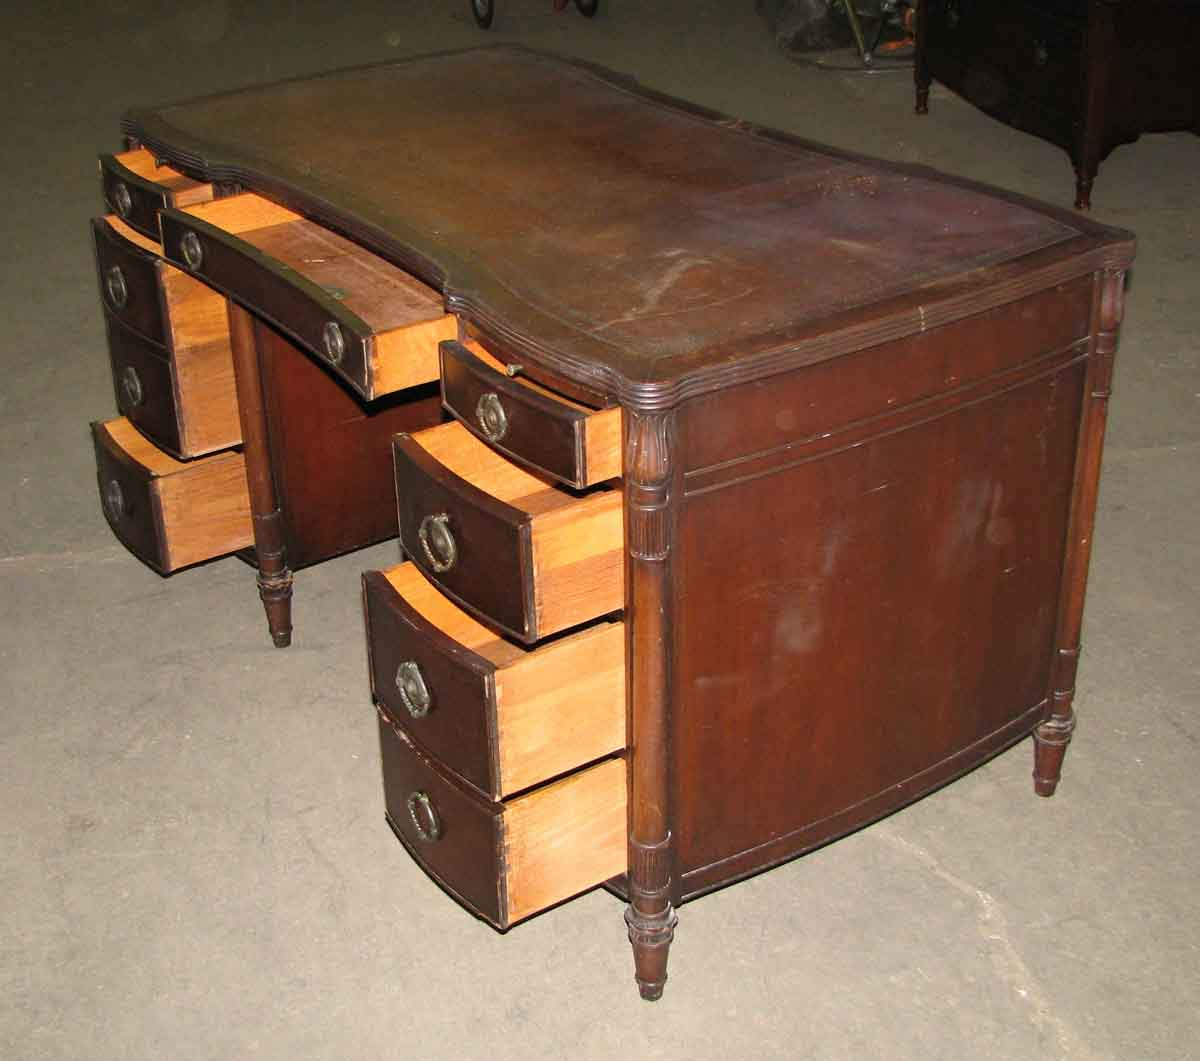 Elegant partners desk with leather top olde good things - Vintage pieces of furniture old times elegance ...